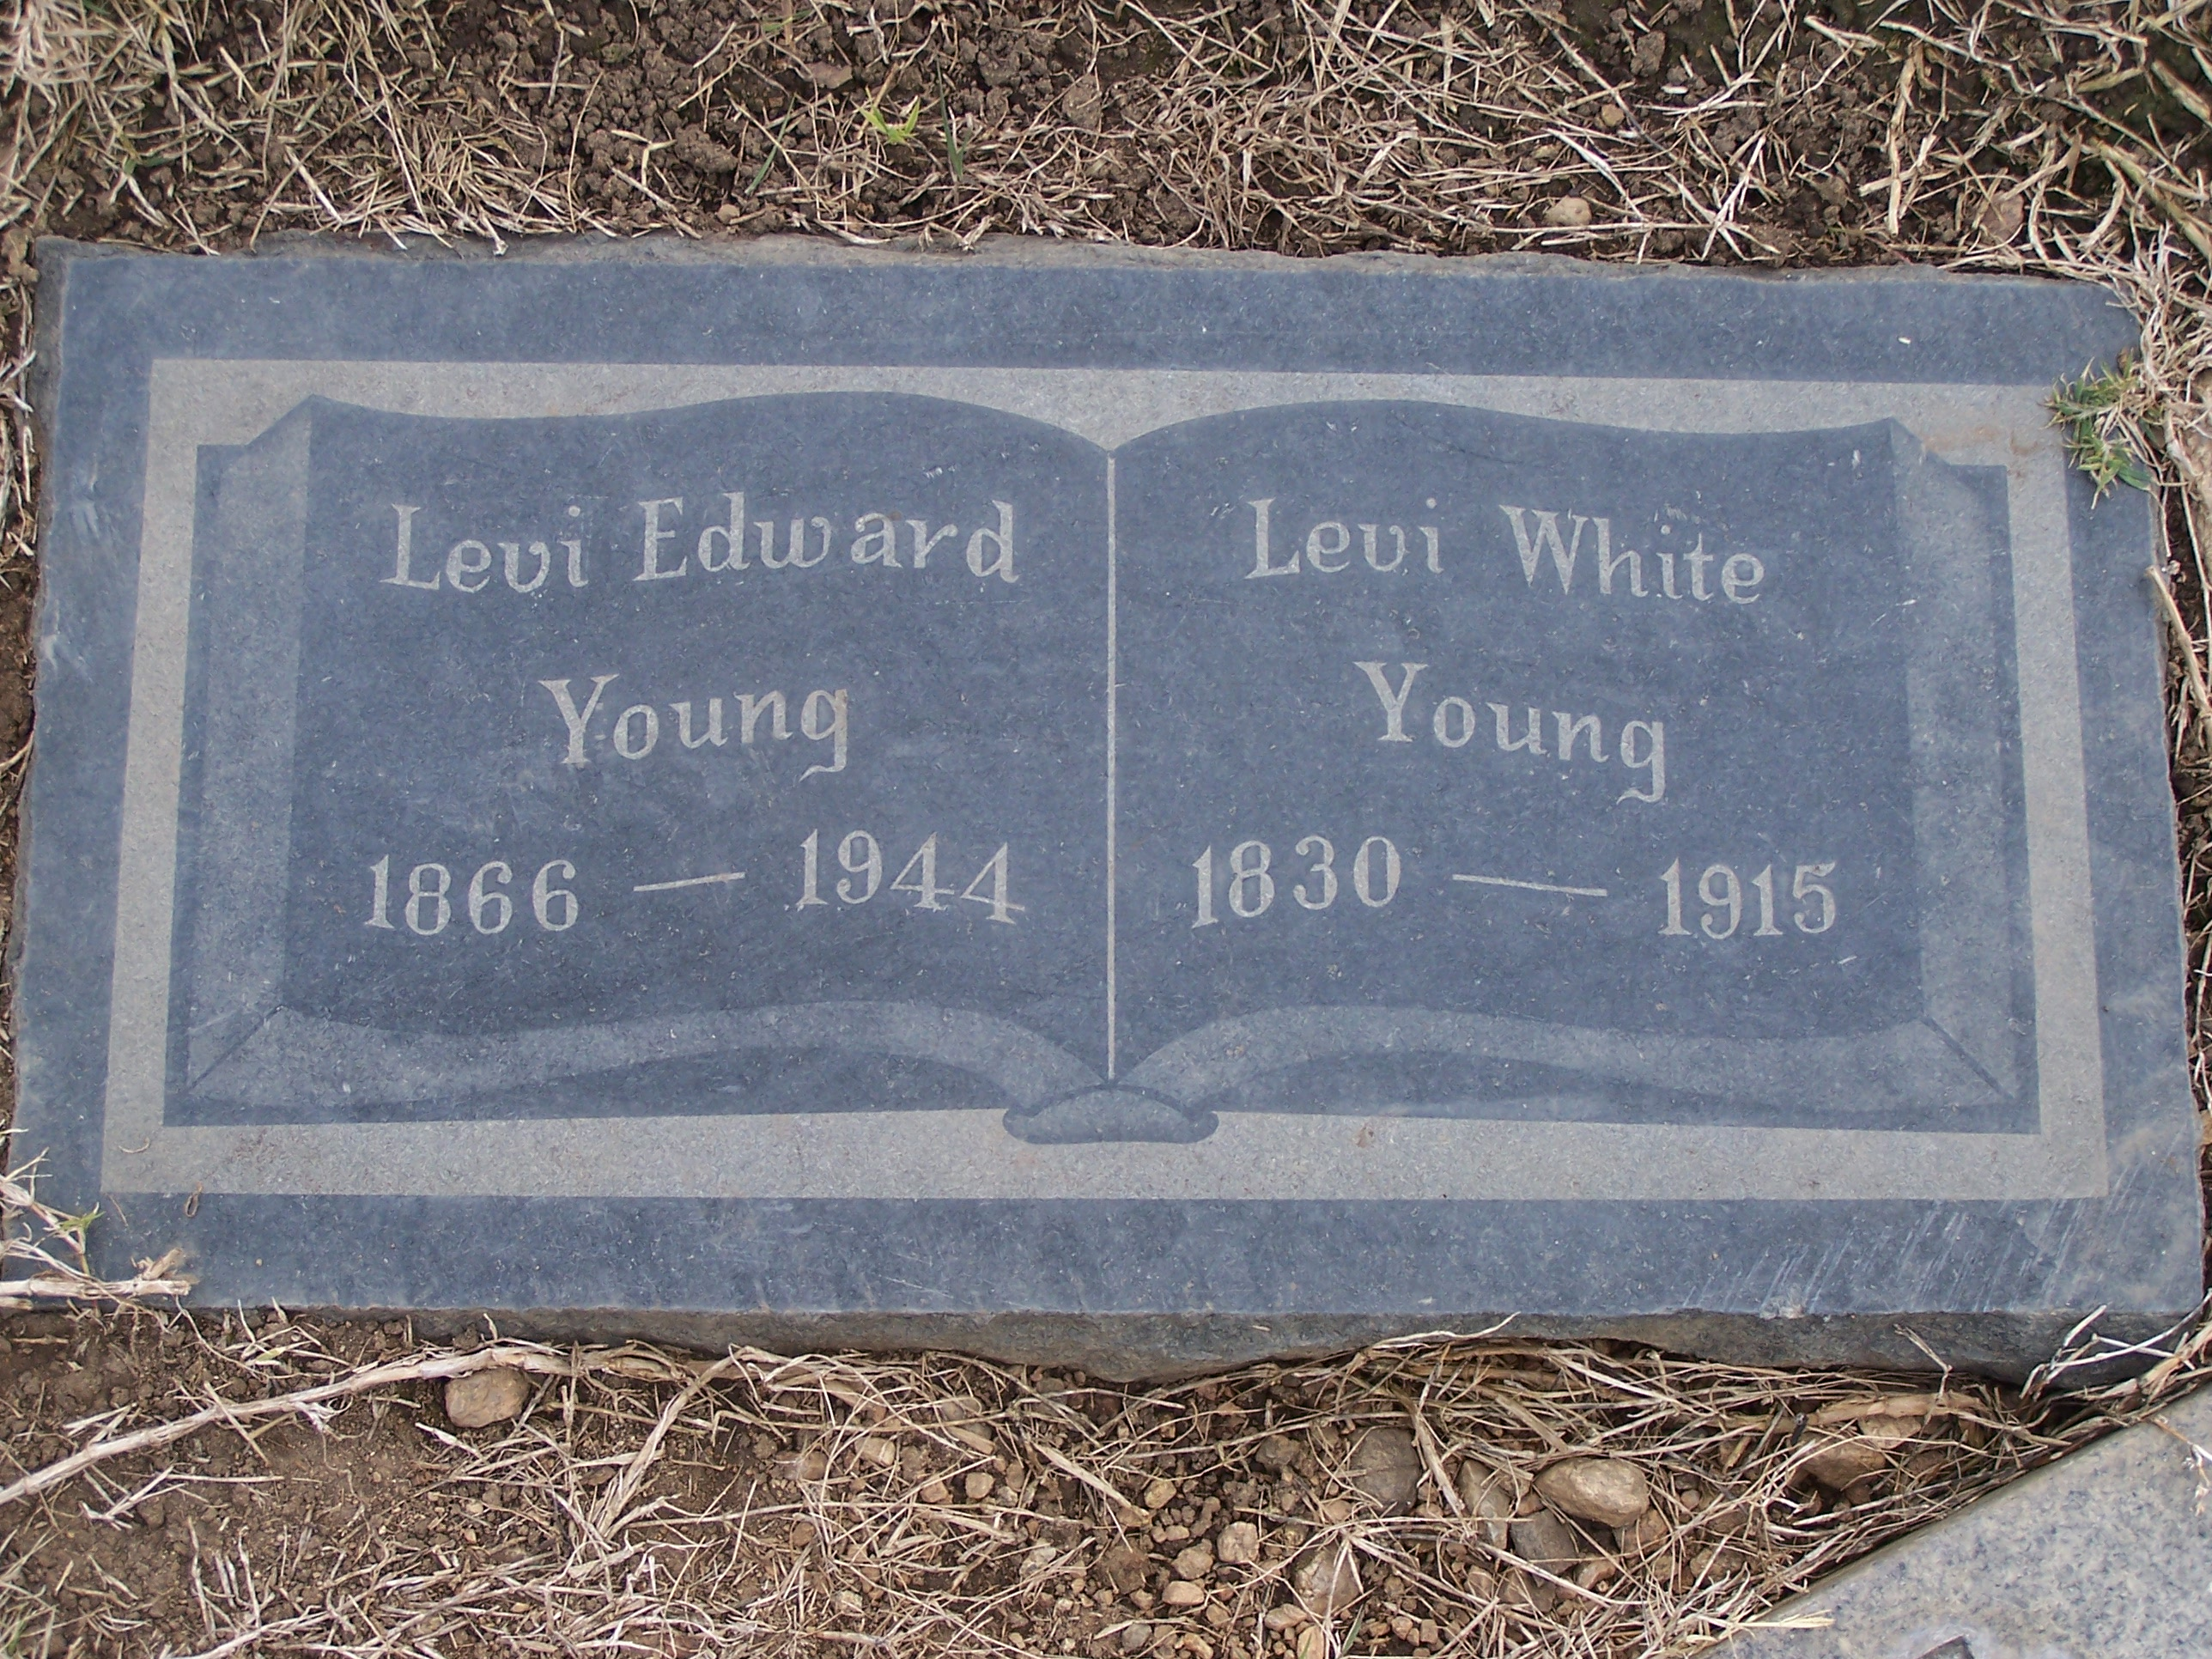 Levi White Young